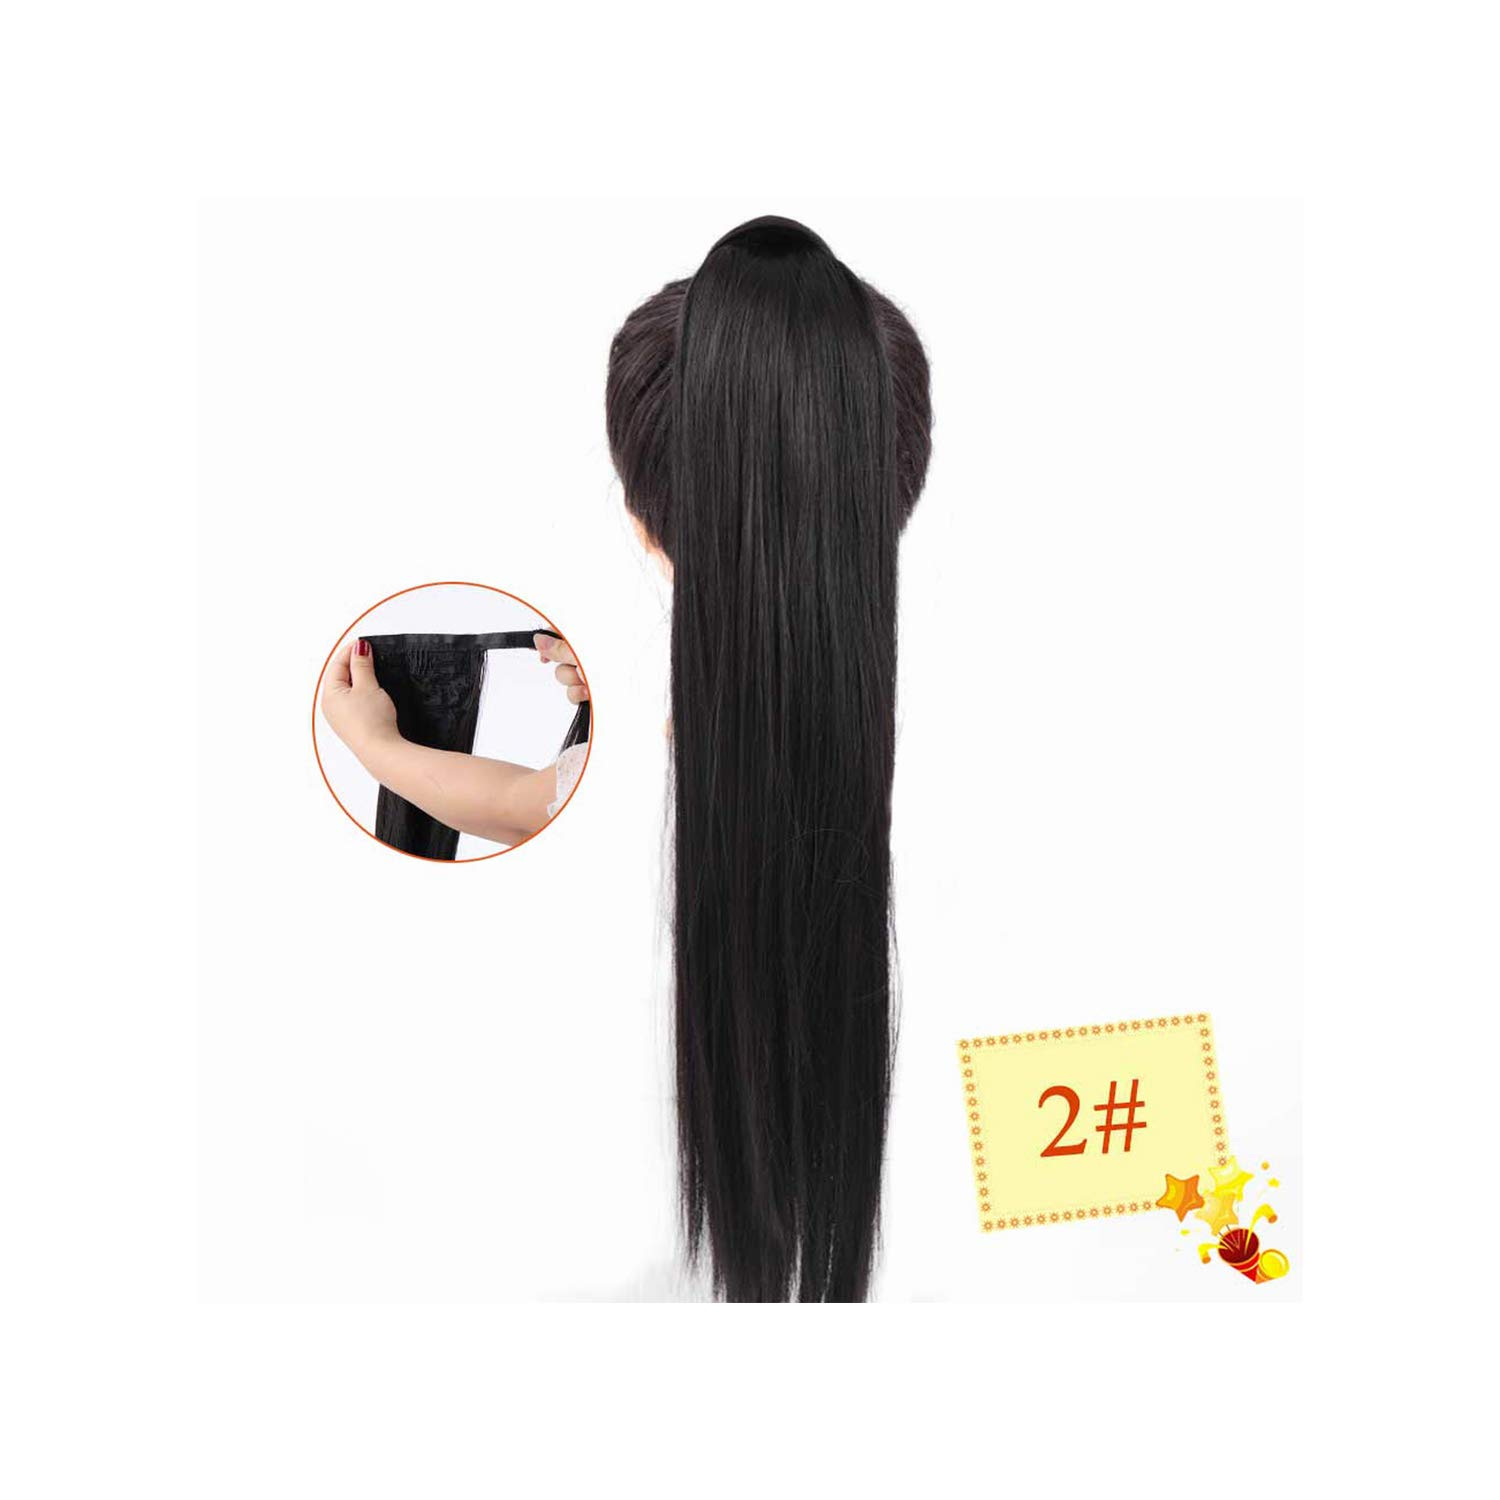 Wrap Synthetic Ponytail Hair Extension Long Straight Women'S Clip In Hair Extensions Pony Tail False Hair,2,22Inches